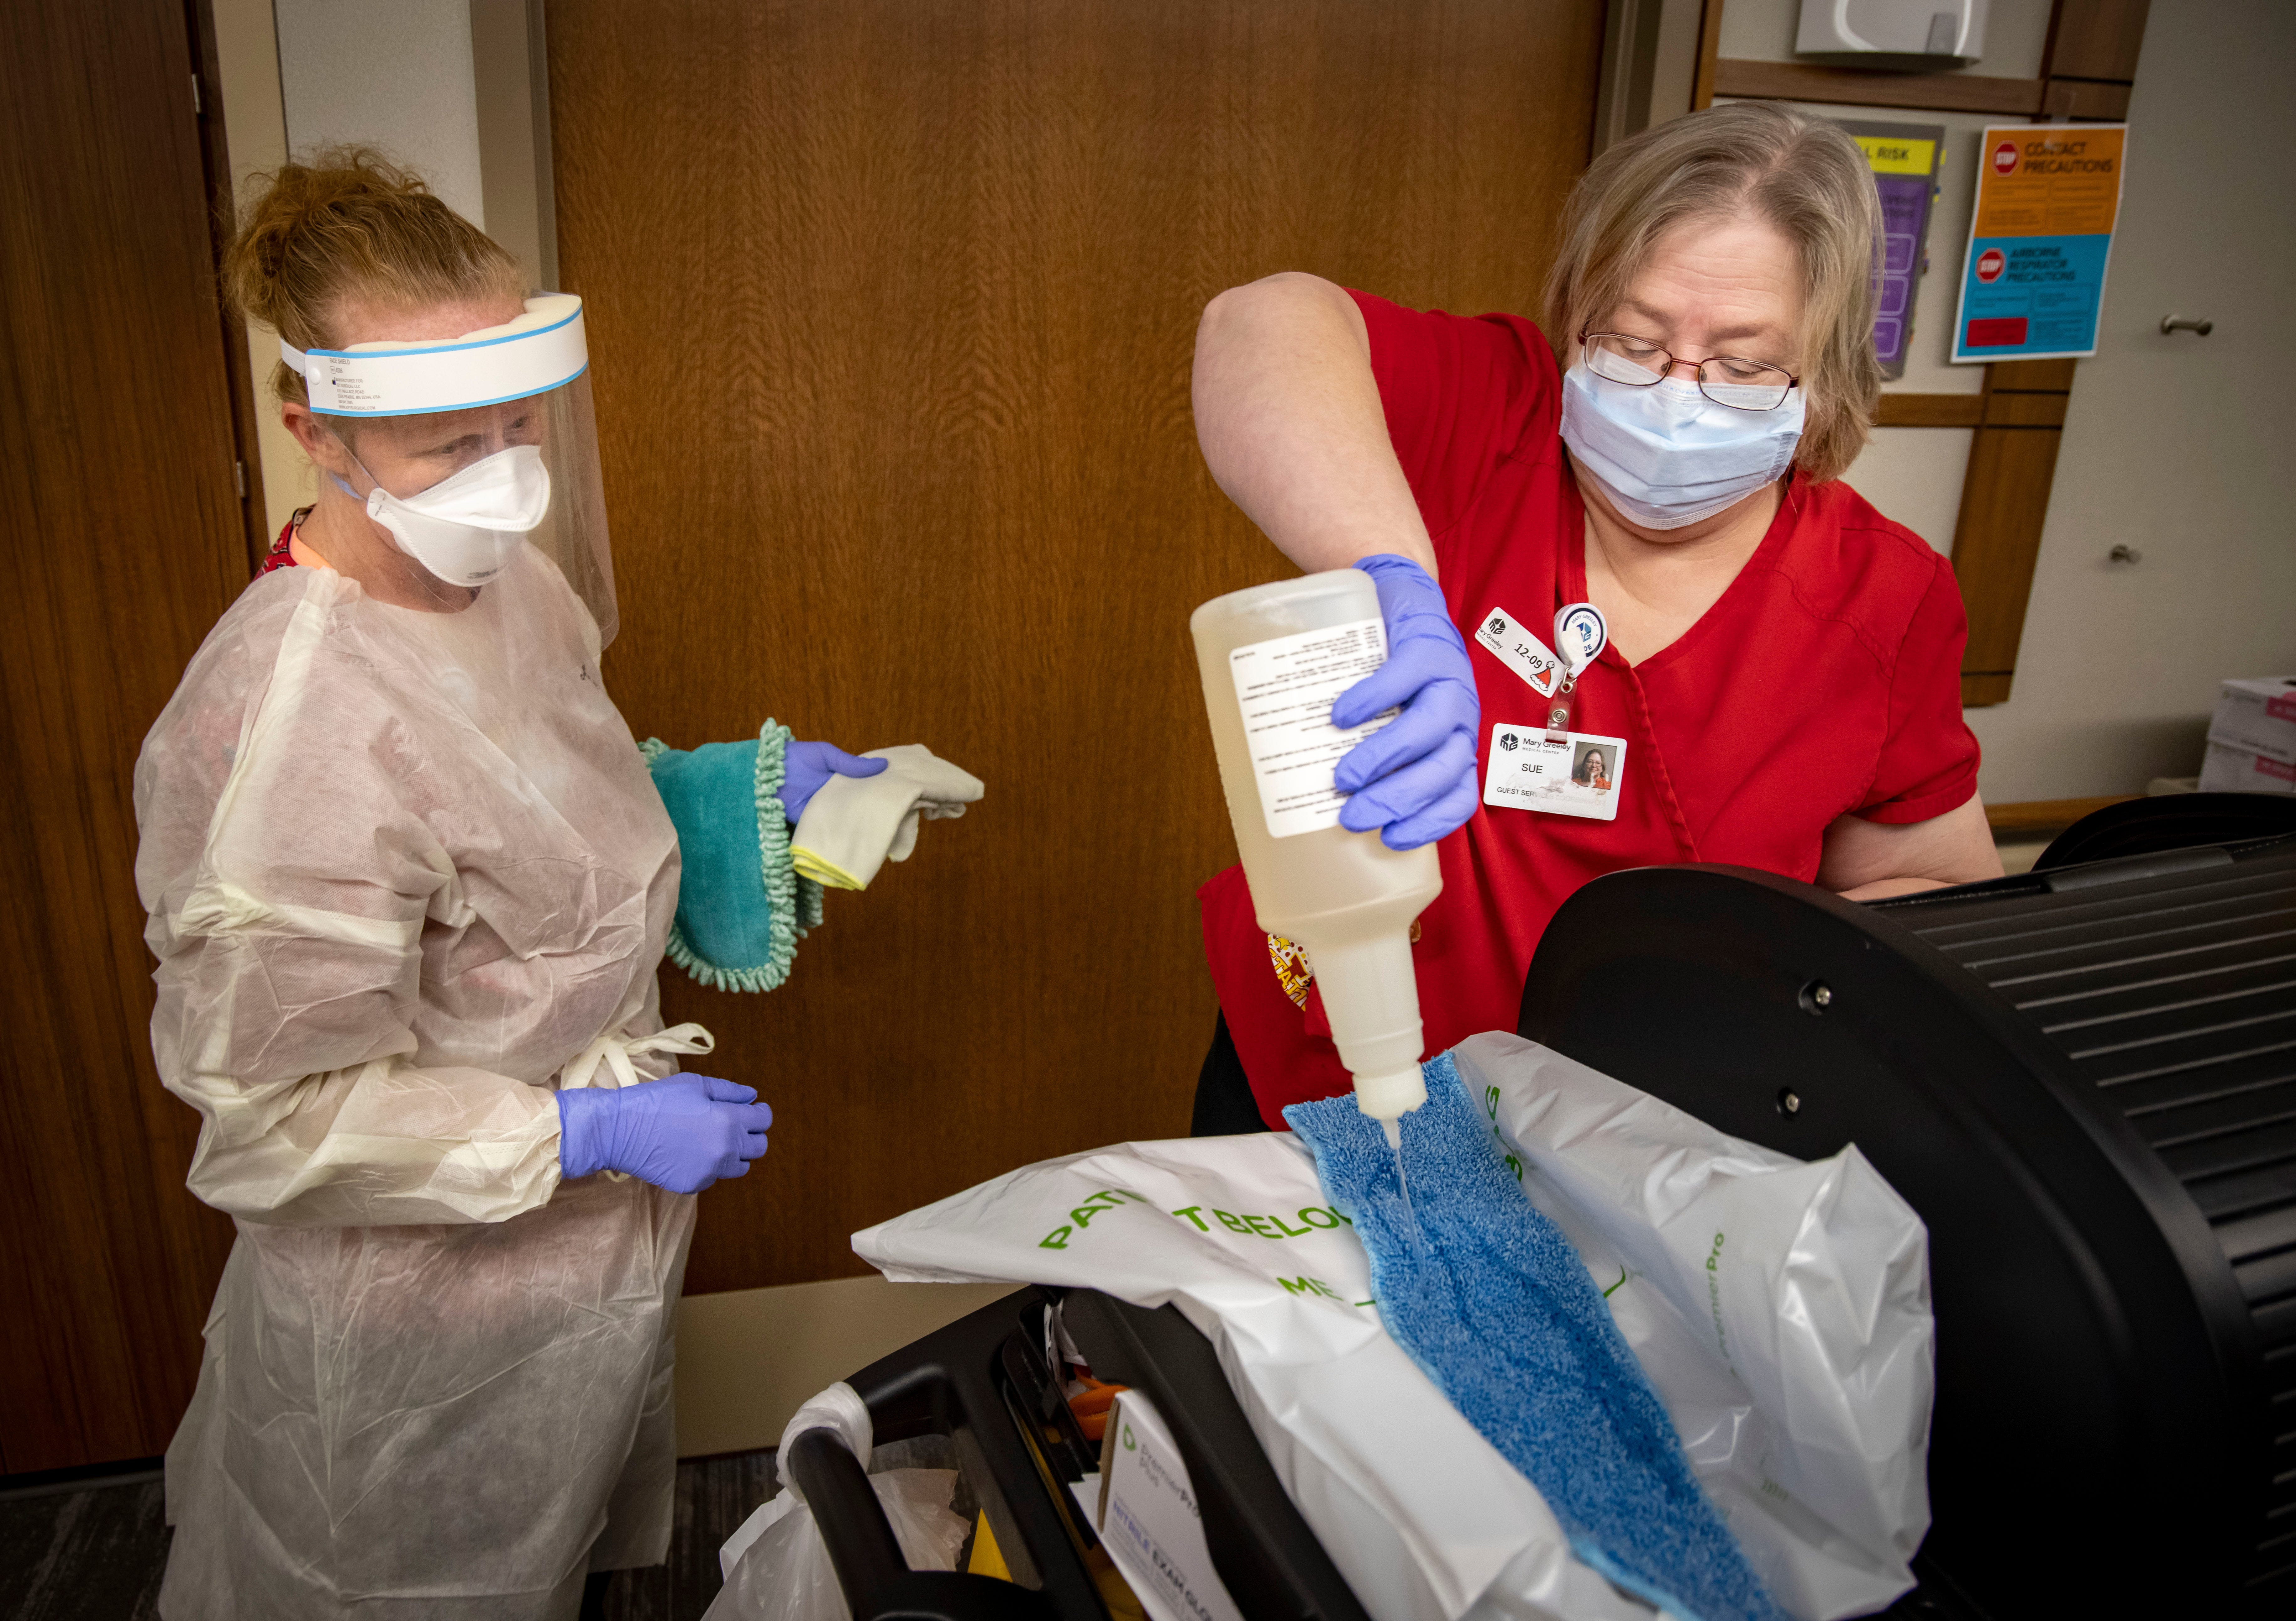 Sherry Weitzel wears full PPE as her partner Sue Walsh wets a cloth to clean a COVID-19 patient's room at Mary Greeley Medical Center in Ames on Dec. 9, 2020.